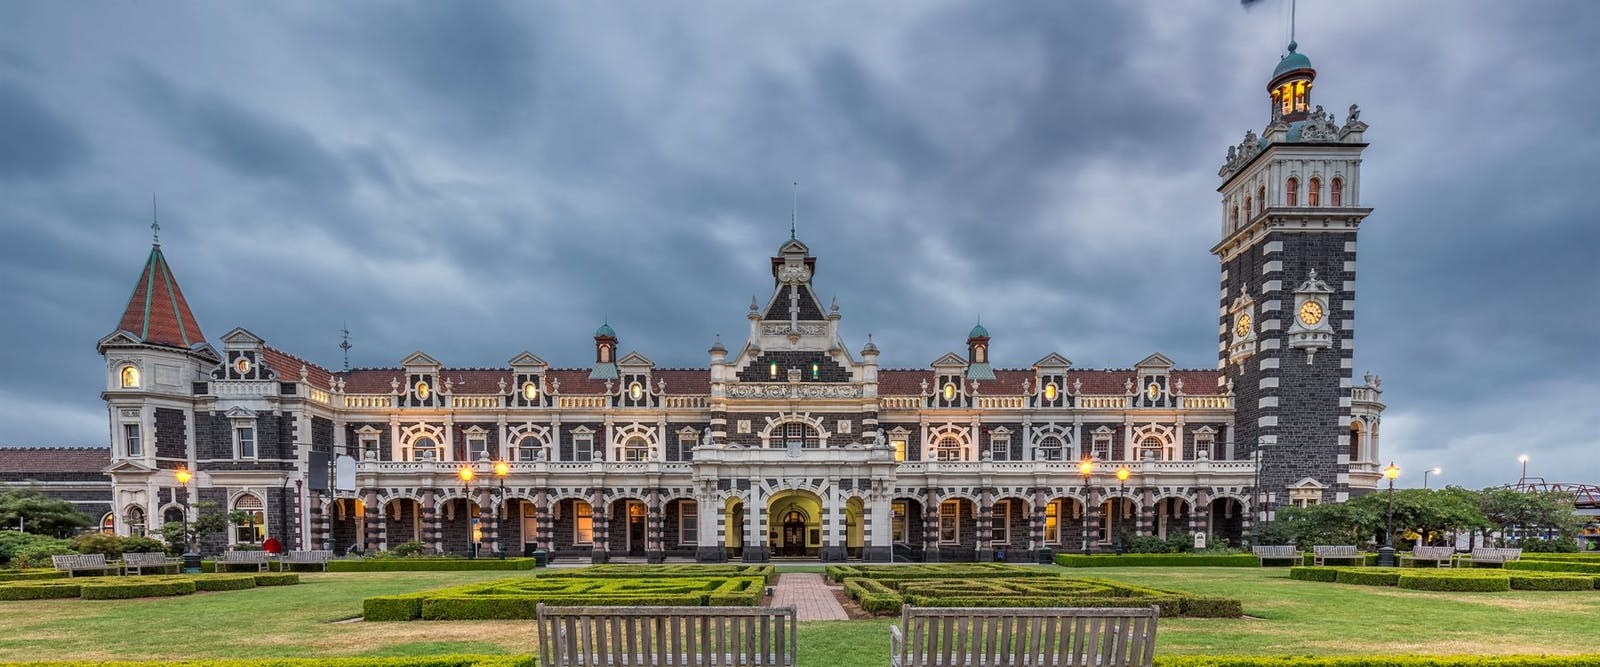 dunedin historic railway station